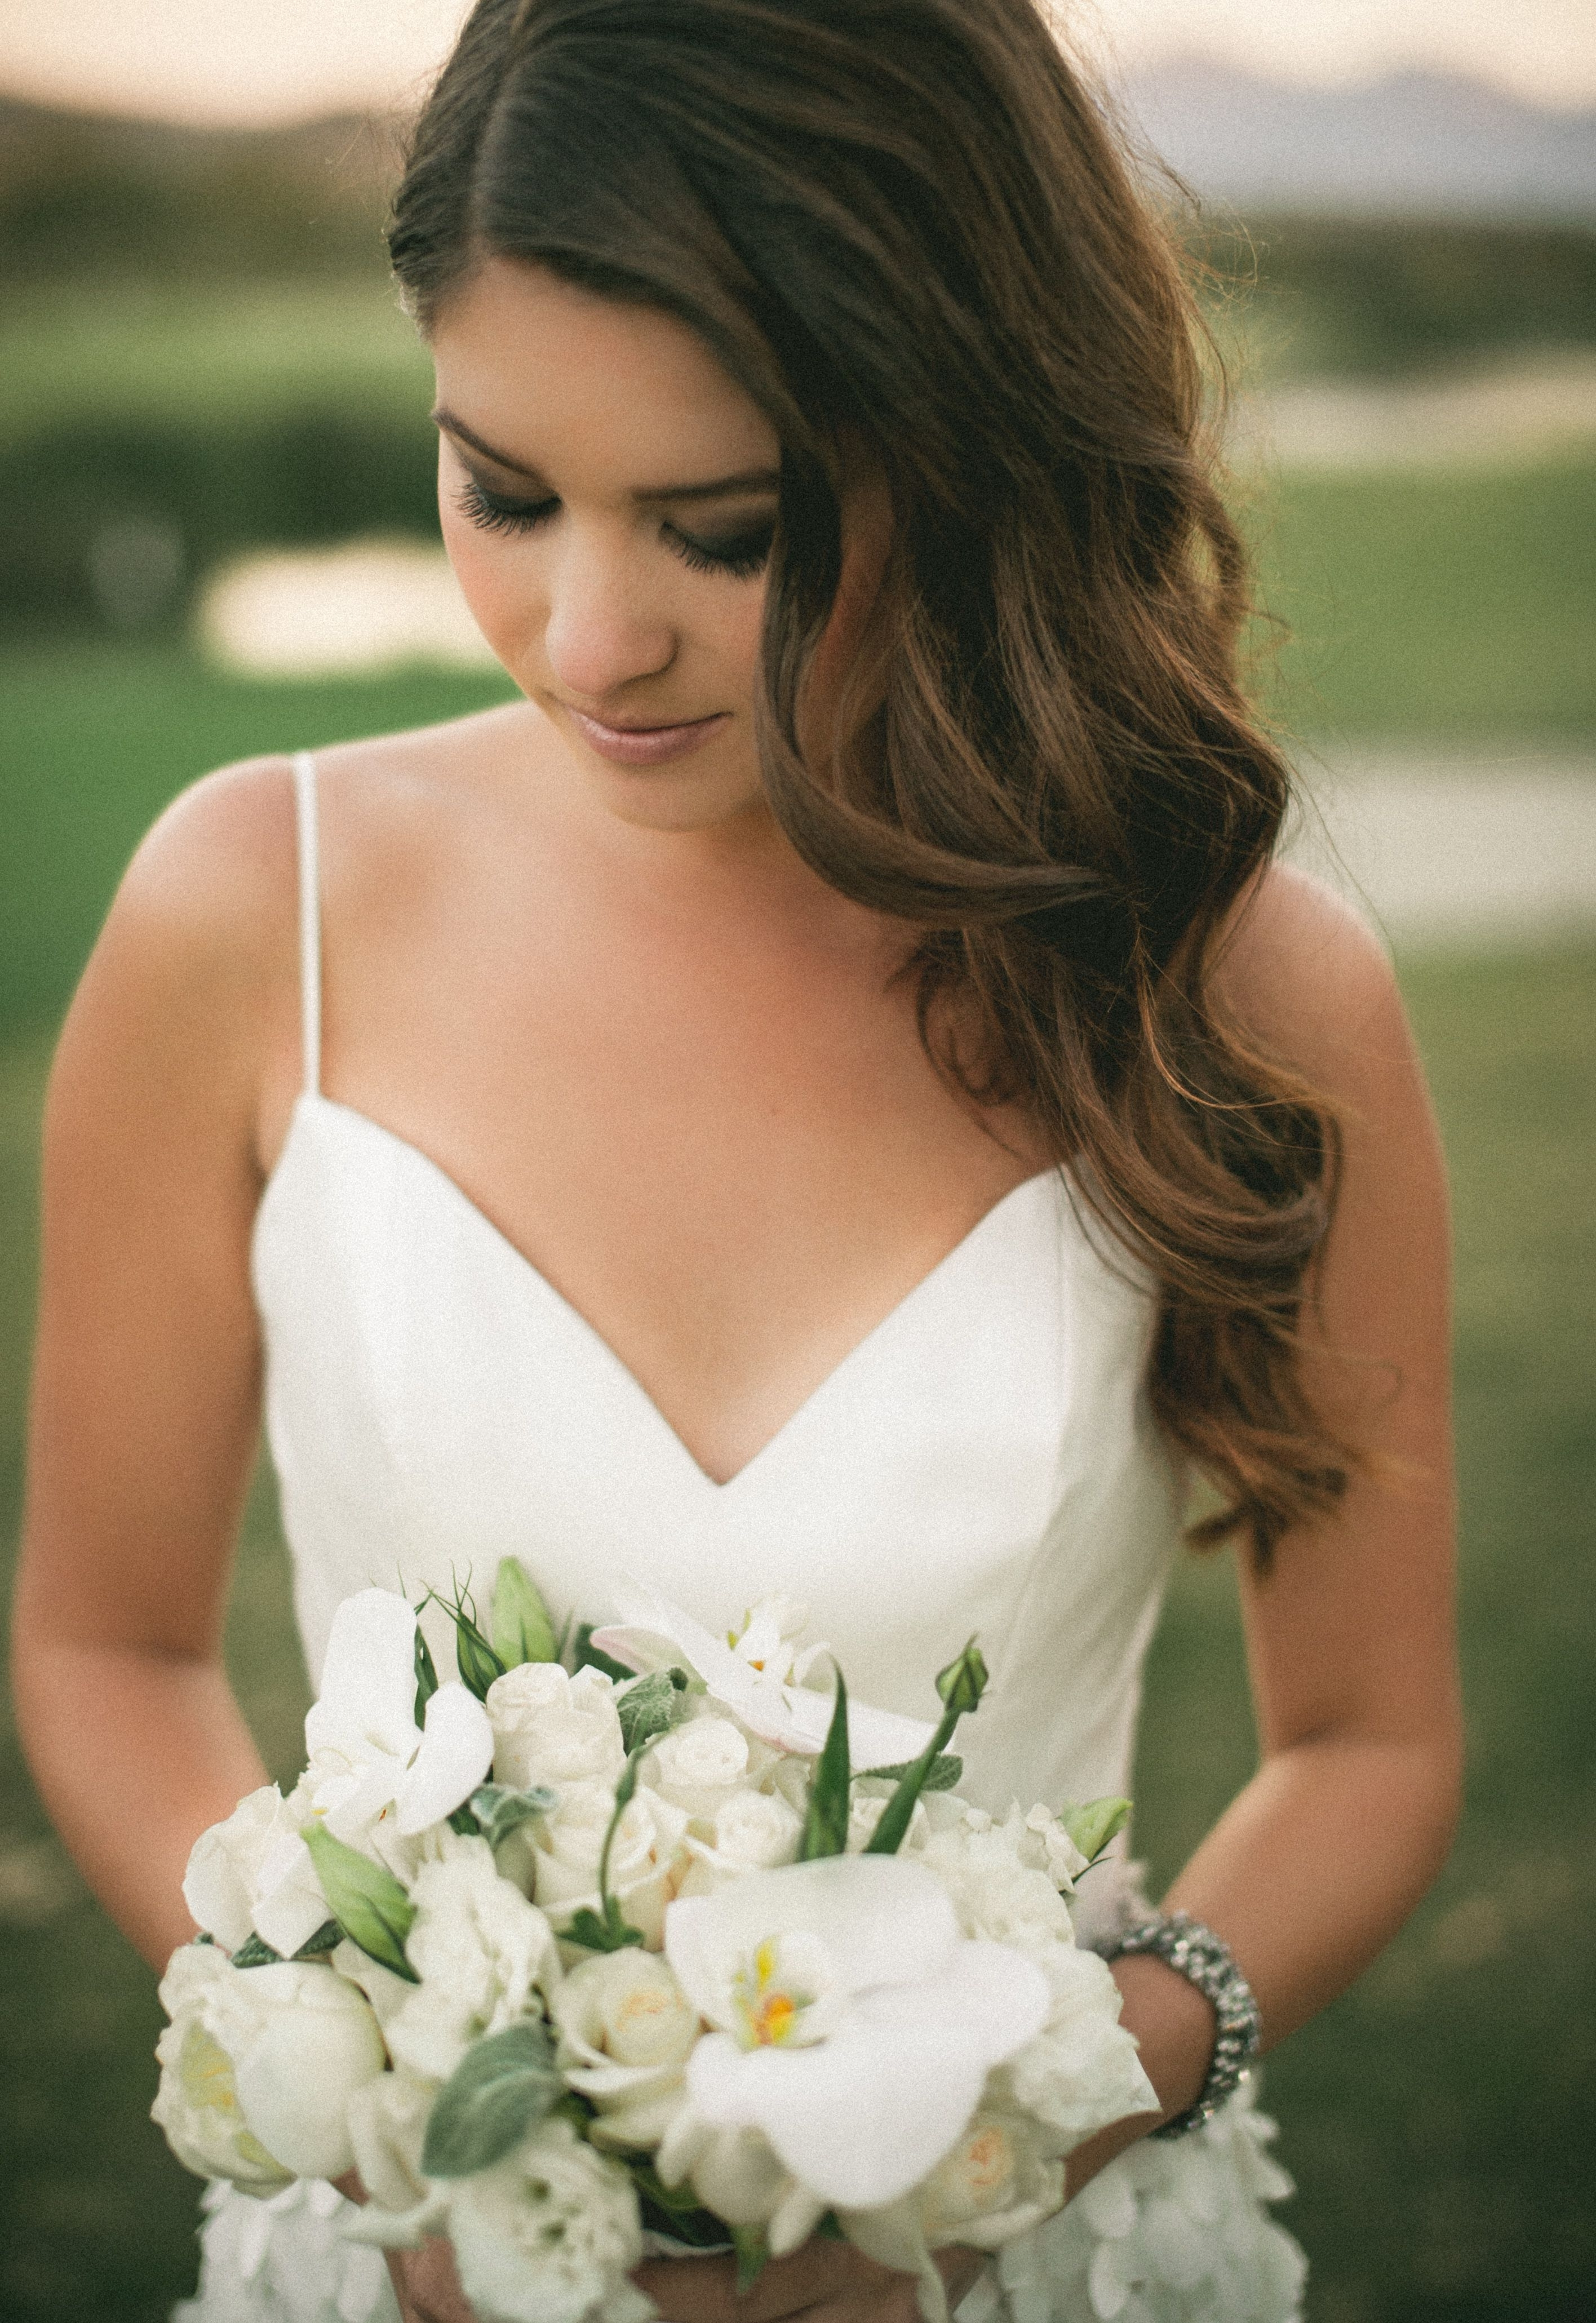 Bridal Hair, Soft Curls, Side Part #wedding #photography (View 4 of 15)